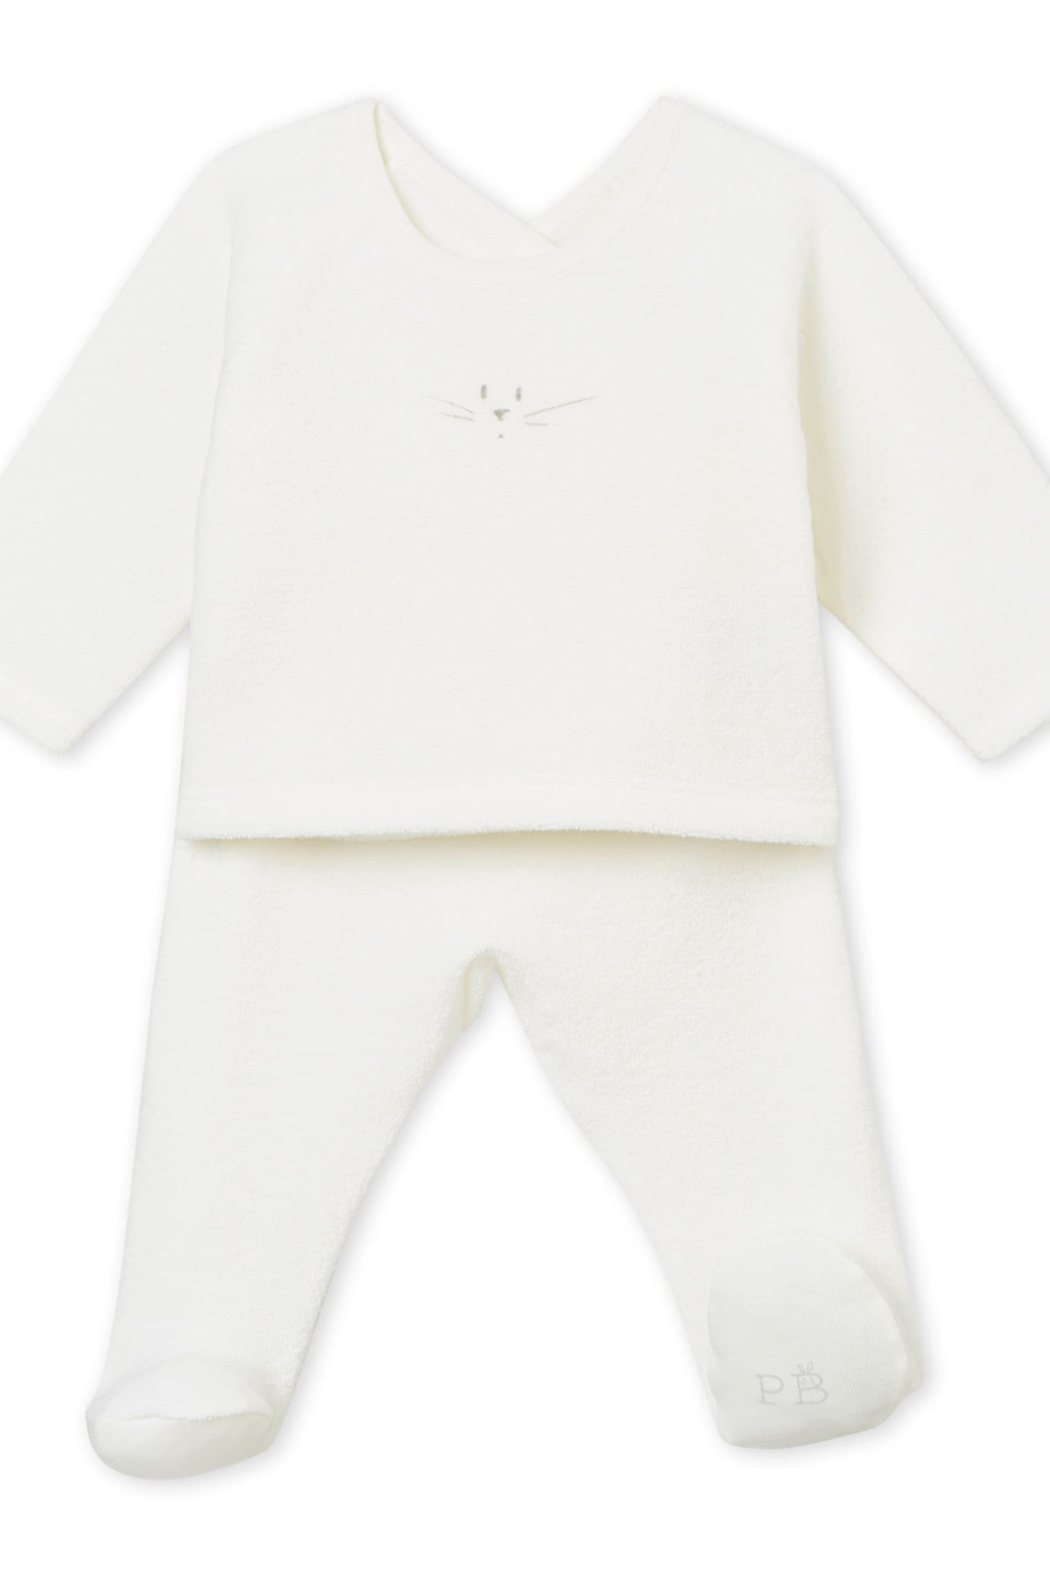 Petit Bateau PETIT BATEAU INFANT TWO PIECE BABY SET IN BRUSHED TOWELLING - Main Image